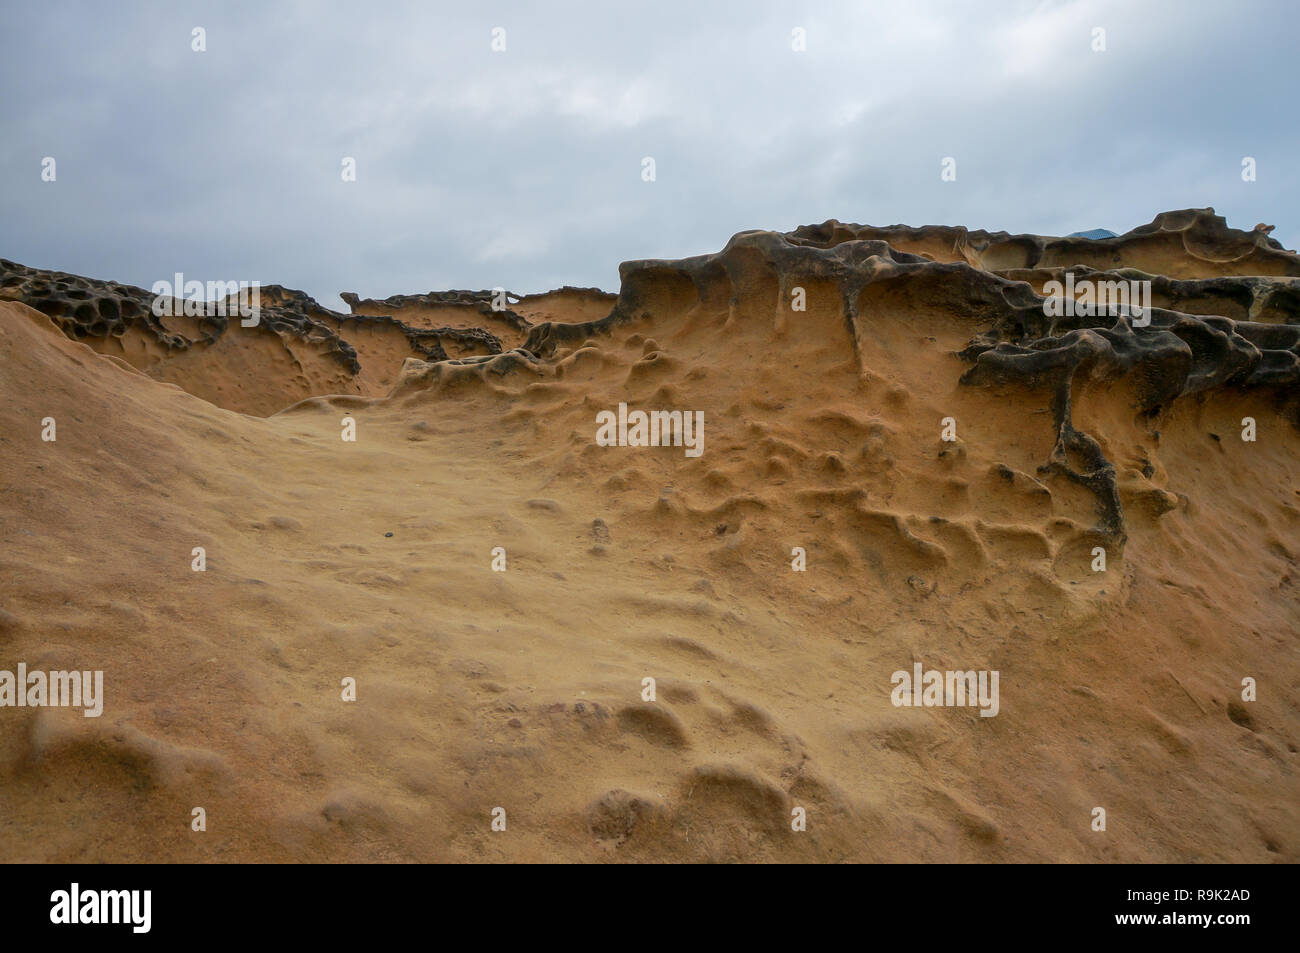 Unique geological formations at Yehliu Geopark in Taiwan on a sunny day with a blue sky with some clouds - Stock Image